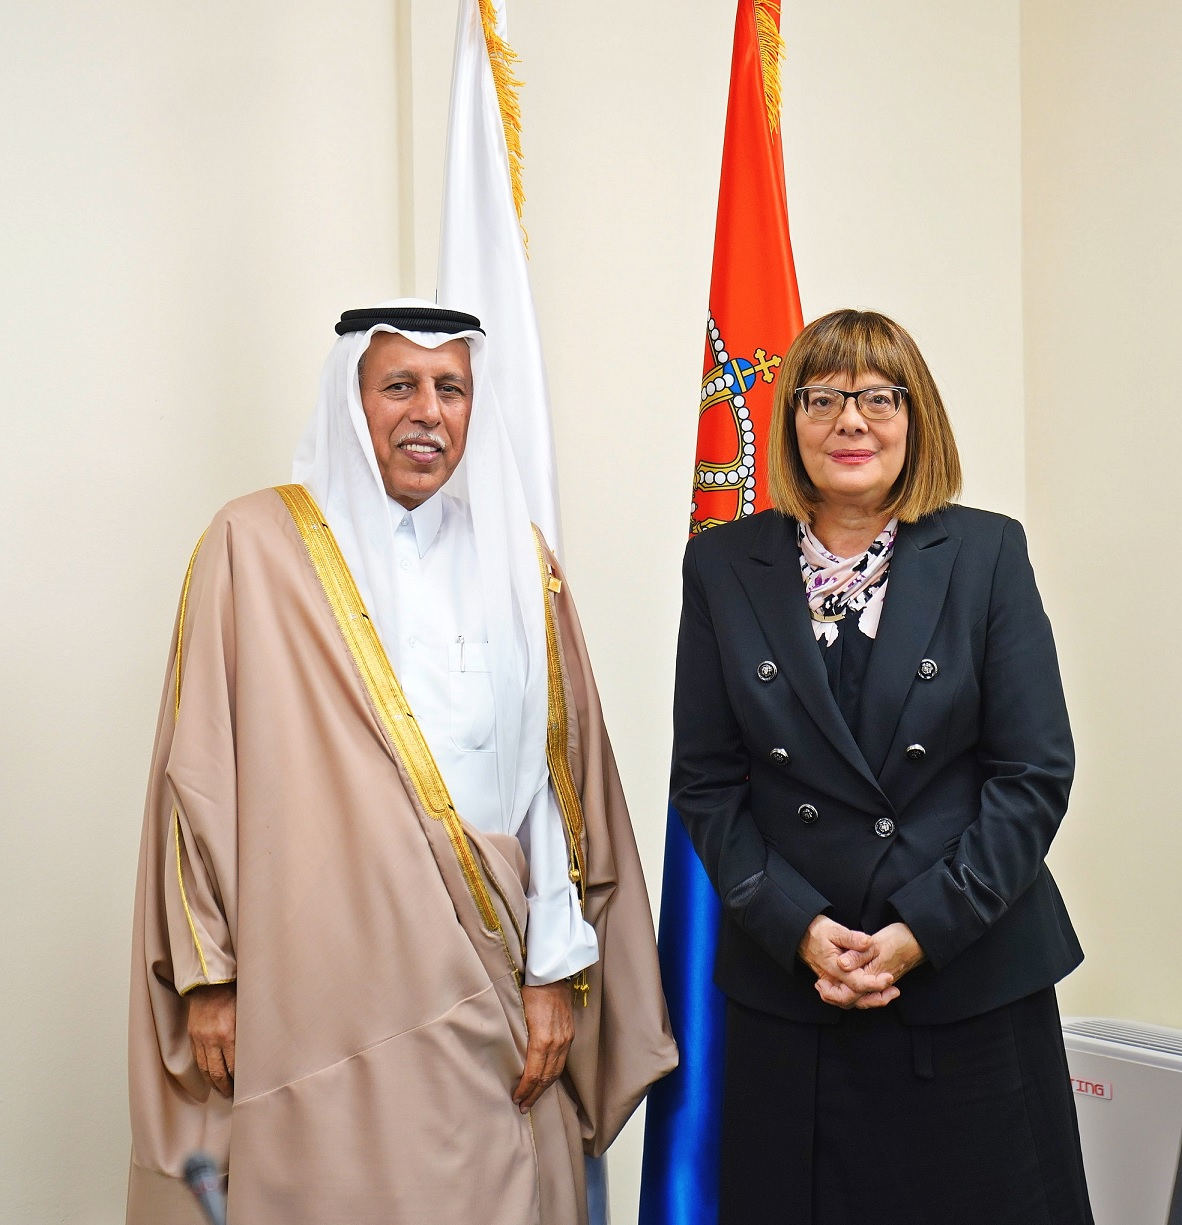 Speaker of Shura Council Holds Meetings on Sidelines of 141st IPU General Assembly